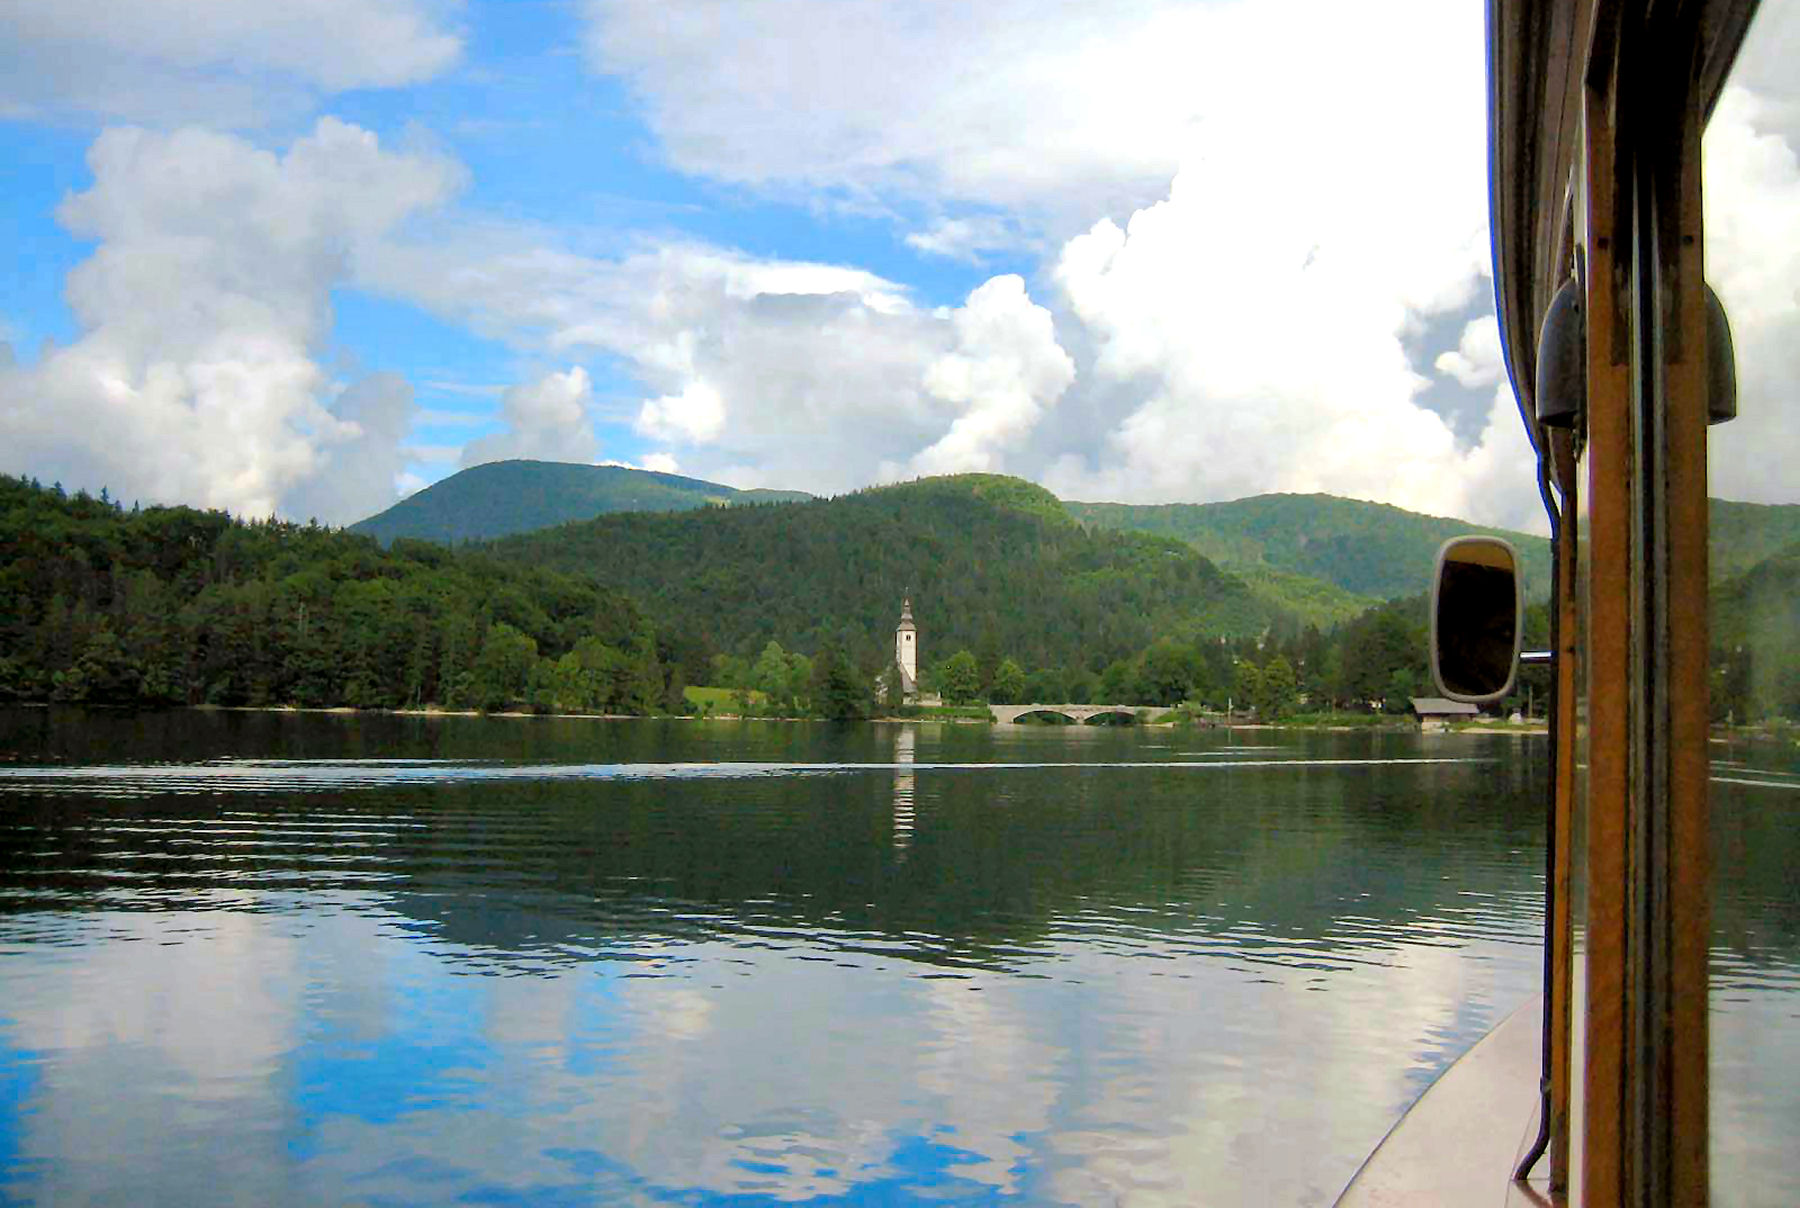 View from tourist boat on Lake Bohinj